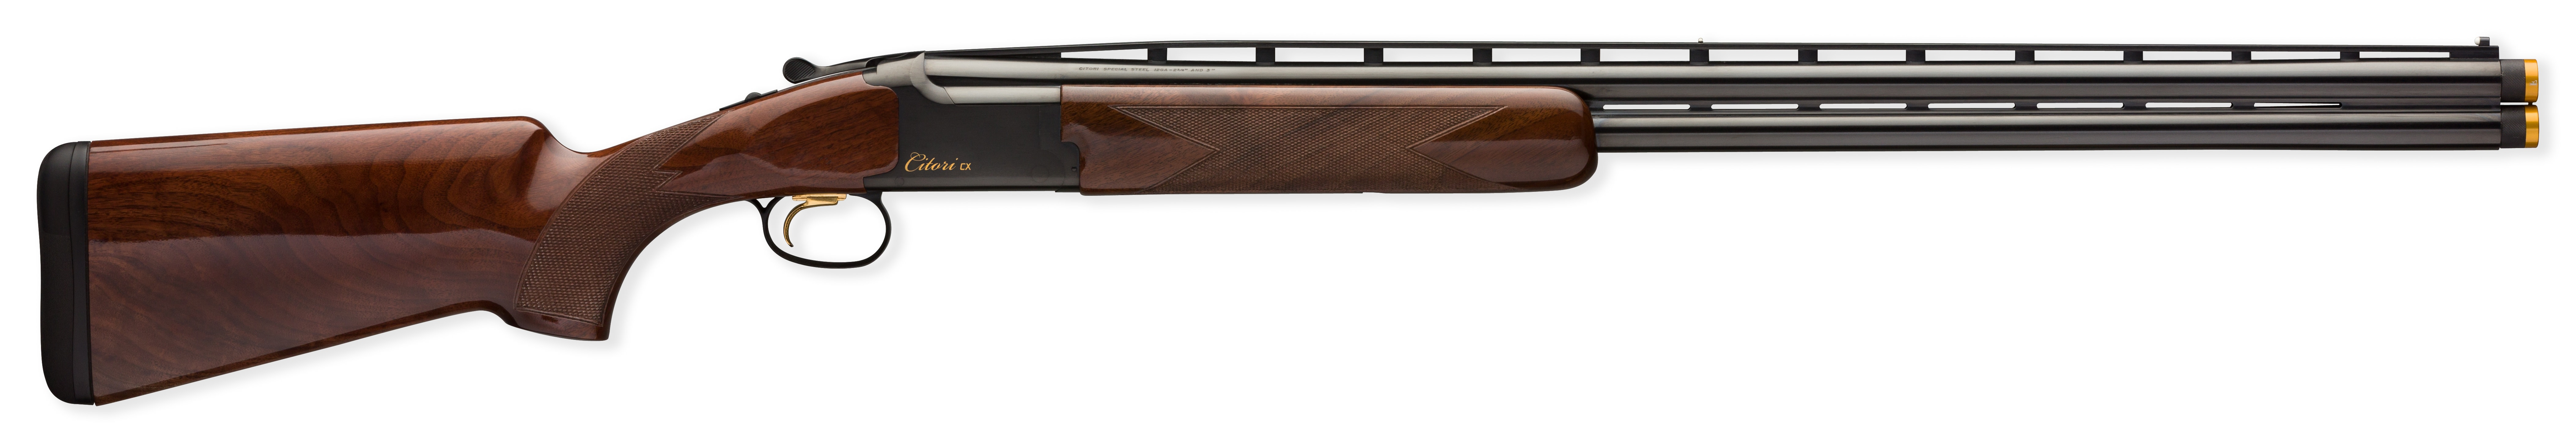 Browning Citori CX Over/Under 3'' 12 Gauge 28'' Blued Steel - American Walnut